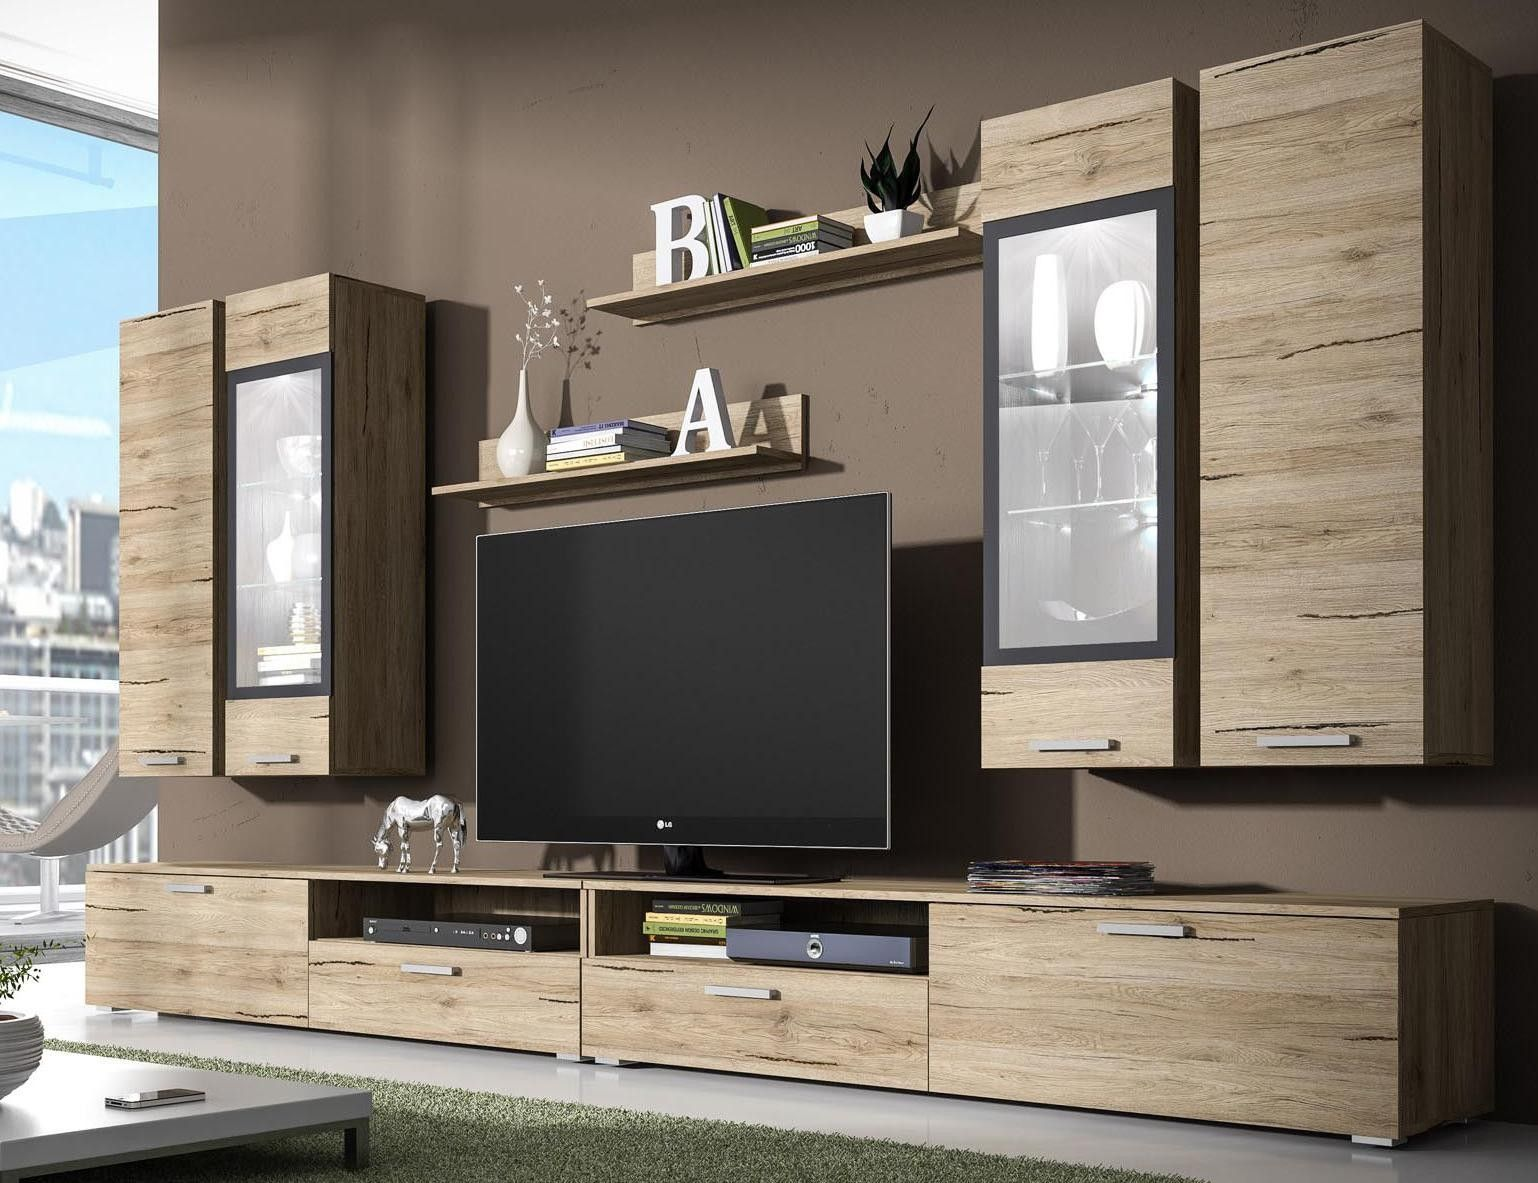 Ensemble Mural Tv Bois - Ensemble Meuble Tv Mural Nova Meuble Tv Design Pas Cher [mjhdah]https://www.trendymobilier.com/6392-thickbox_default/meuble-mural-tv-bois-a-led.jpg